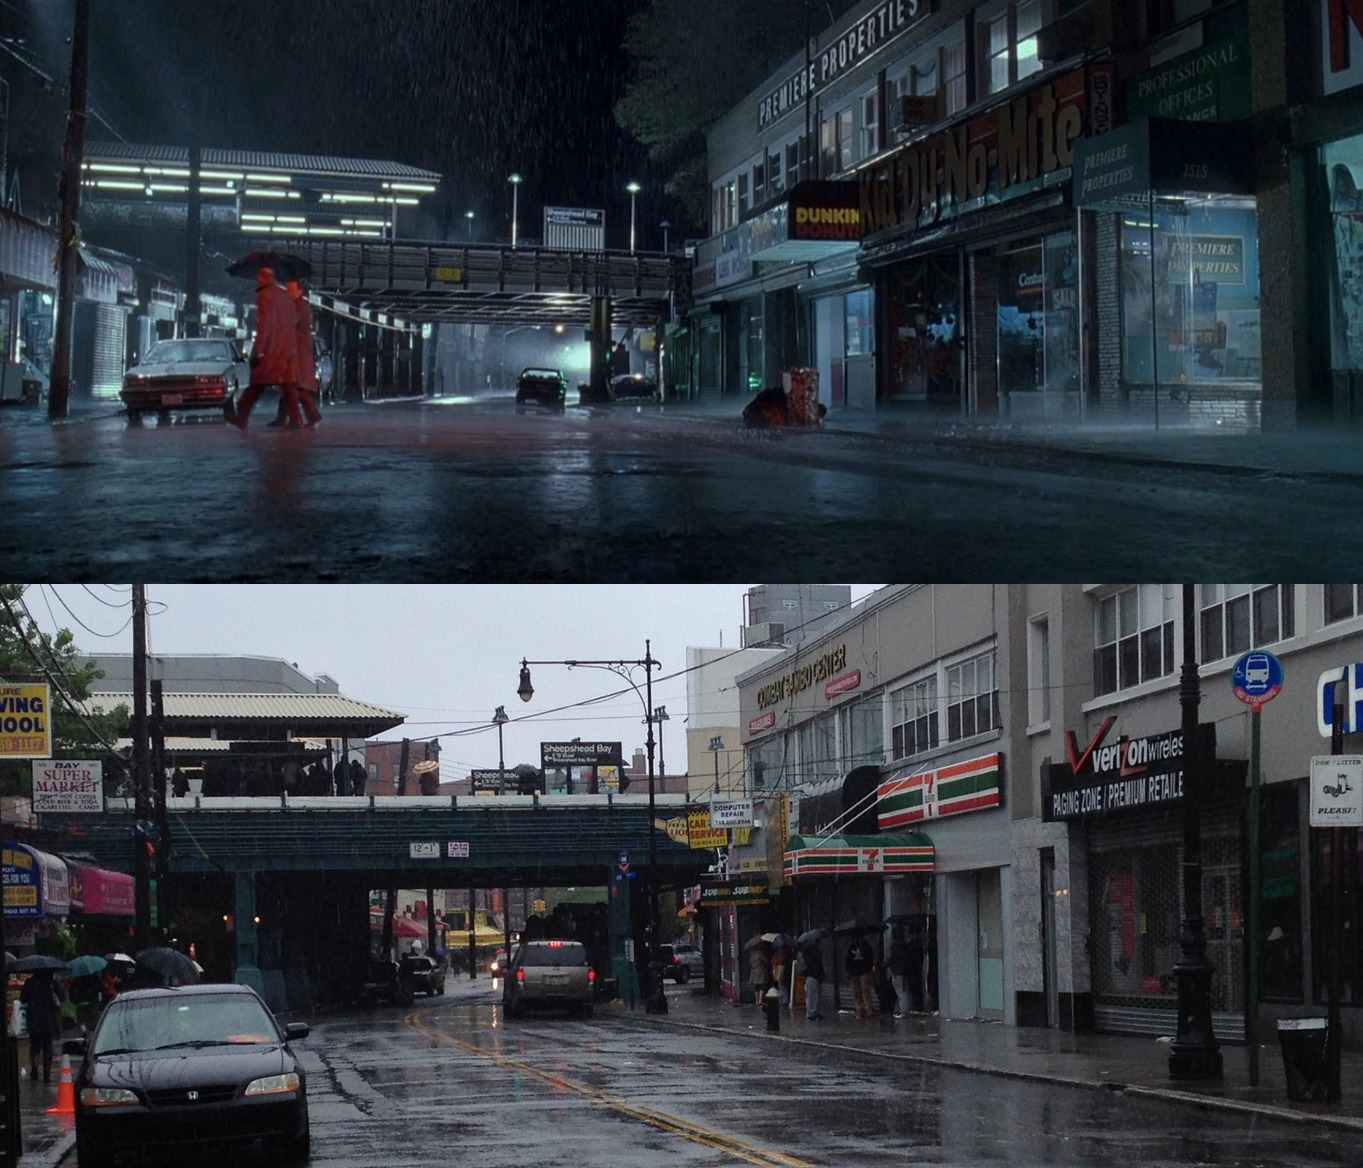 Comparison of Sheepshead Bay subway stop in the movie Glengarry Glen Ross, and present day